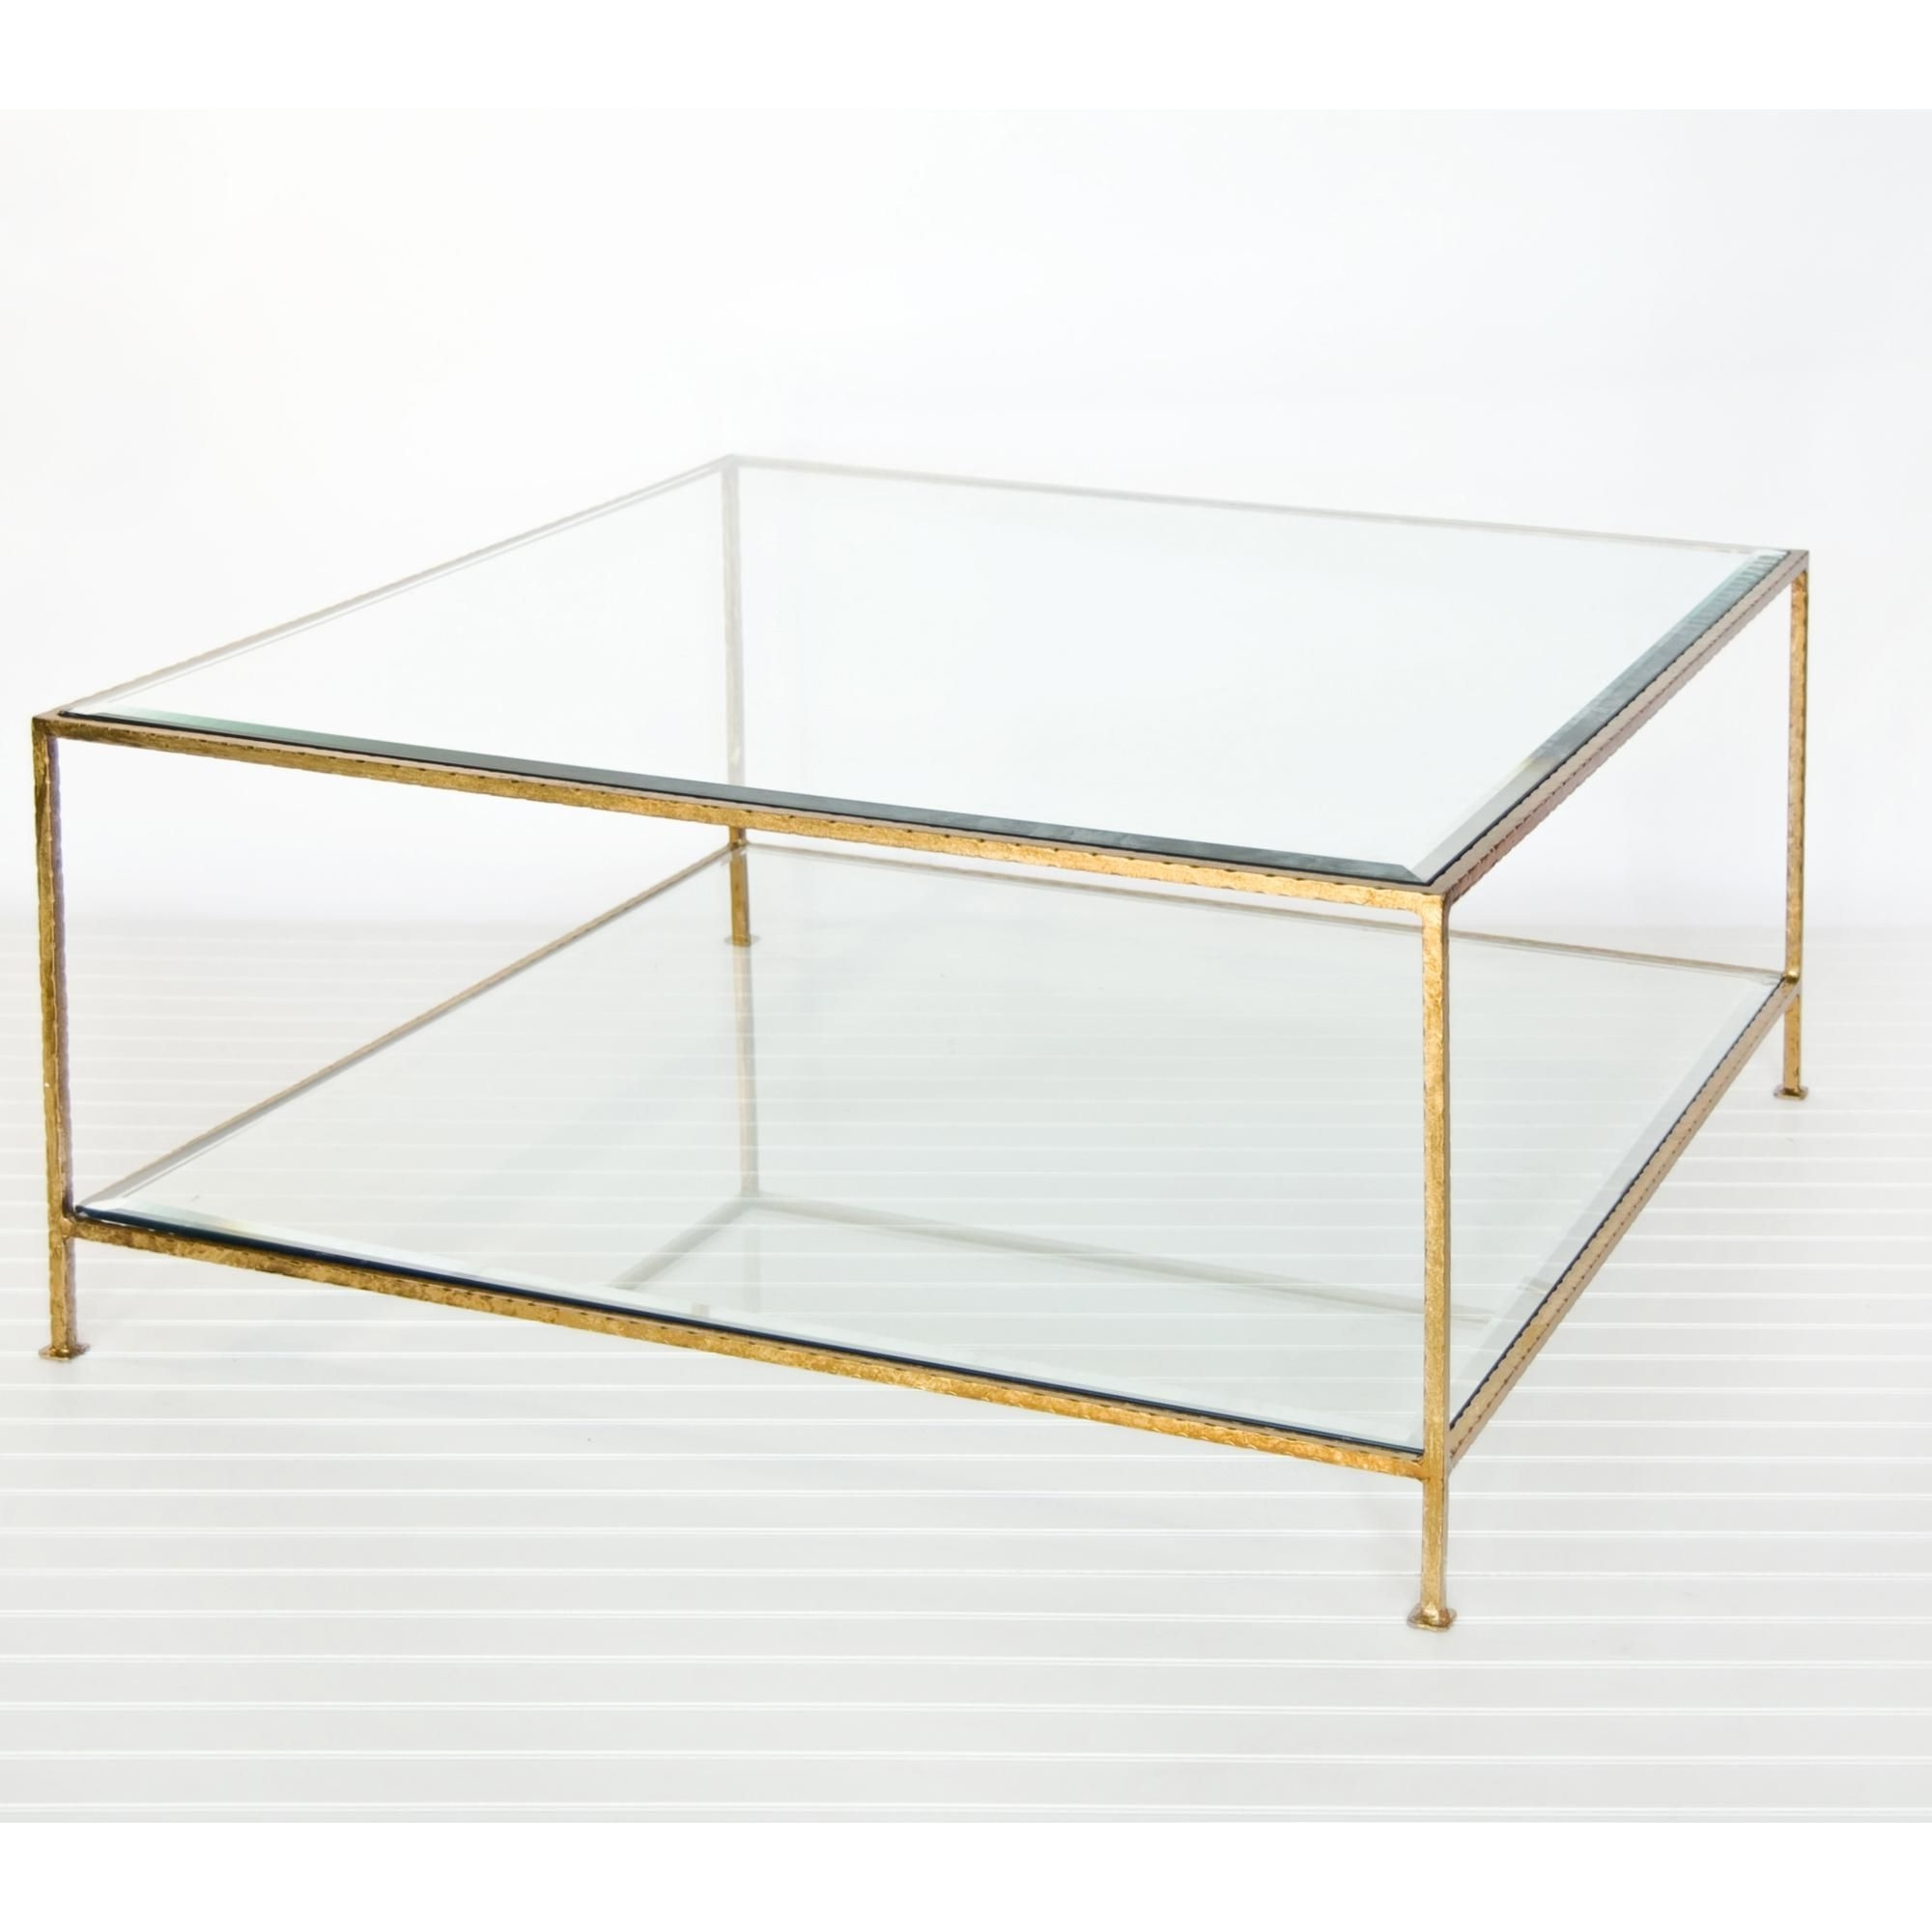 Nest Throughout Recent Acrylic & Brushed Brass Coffee Tables (View 14 of 20)